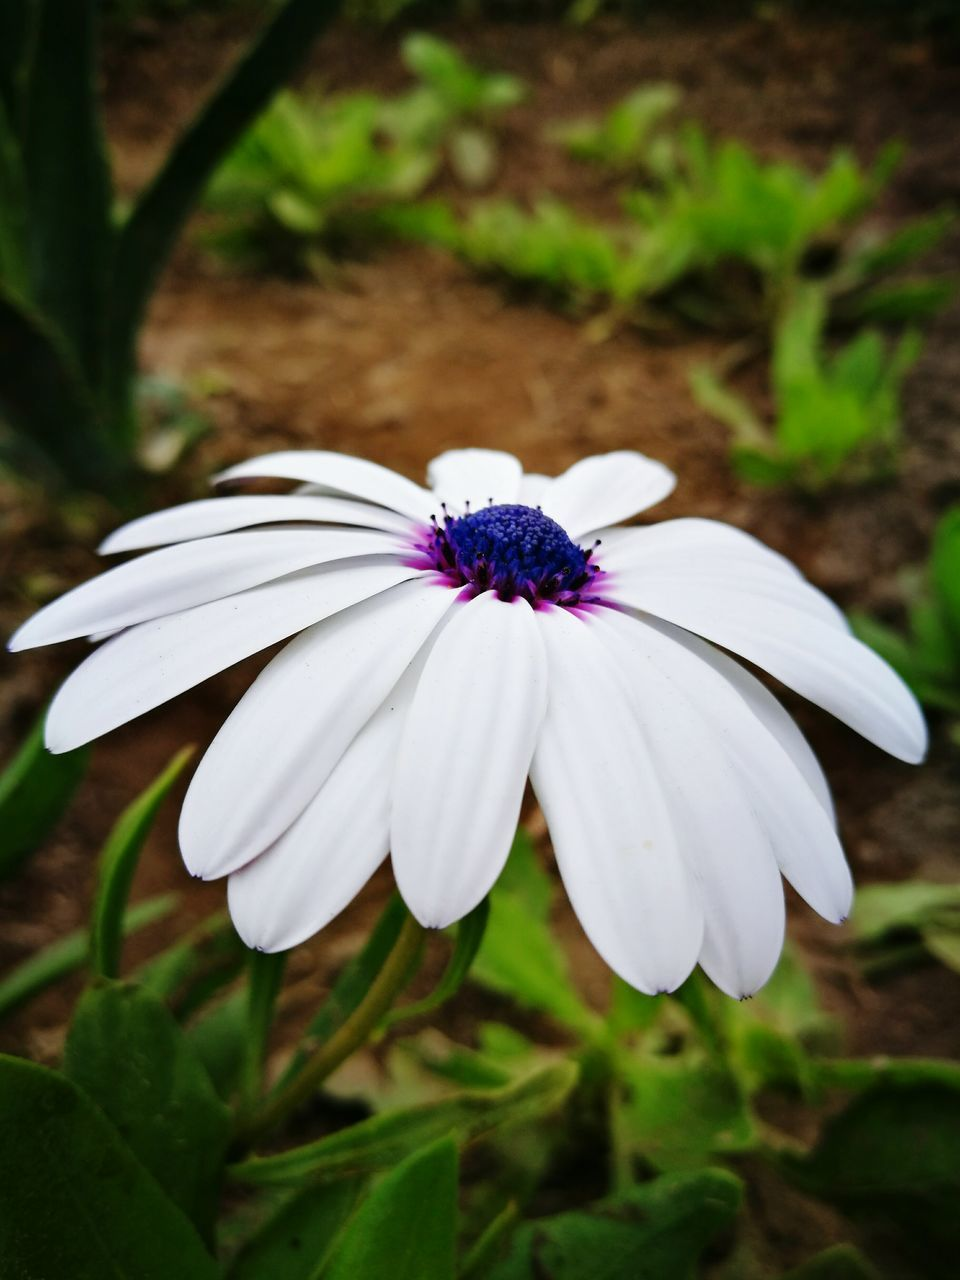 flower, petal, white color, fragility, flower head, freshness, beauty in nature, growth, nature, focus on foreground, plant, blooming, close-up, day, no people, outdoors, osteospermum, periwinkle